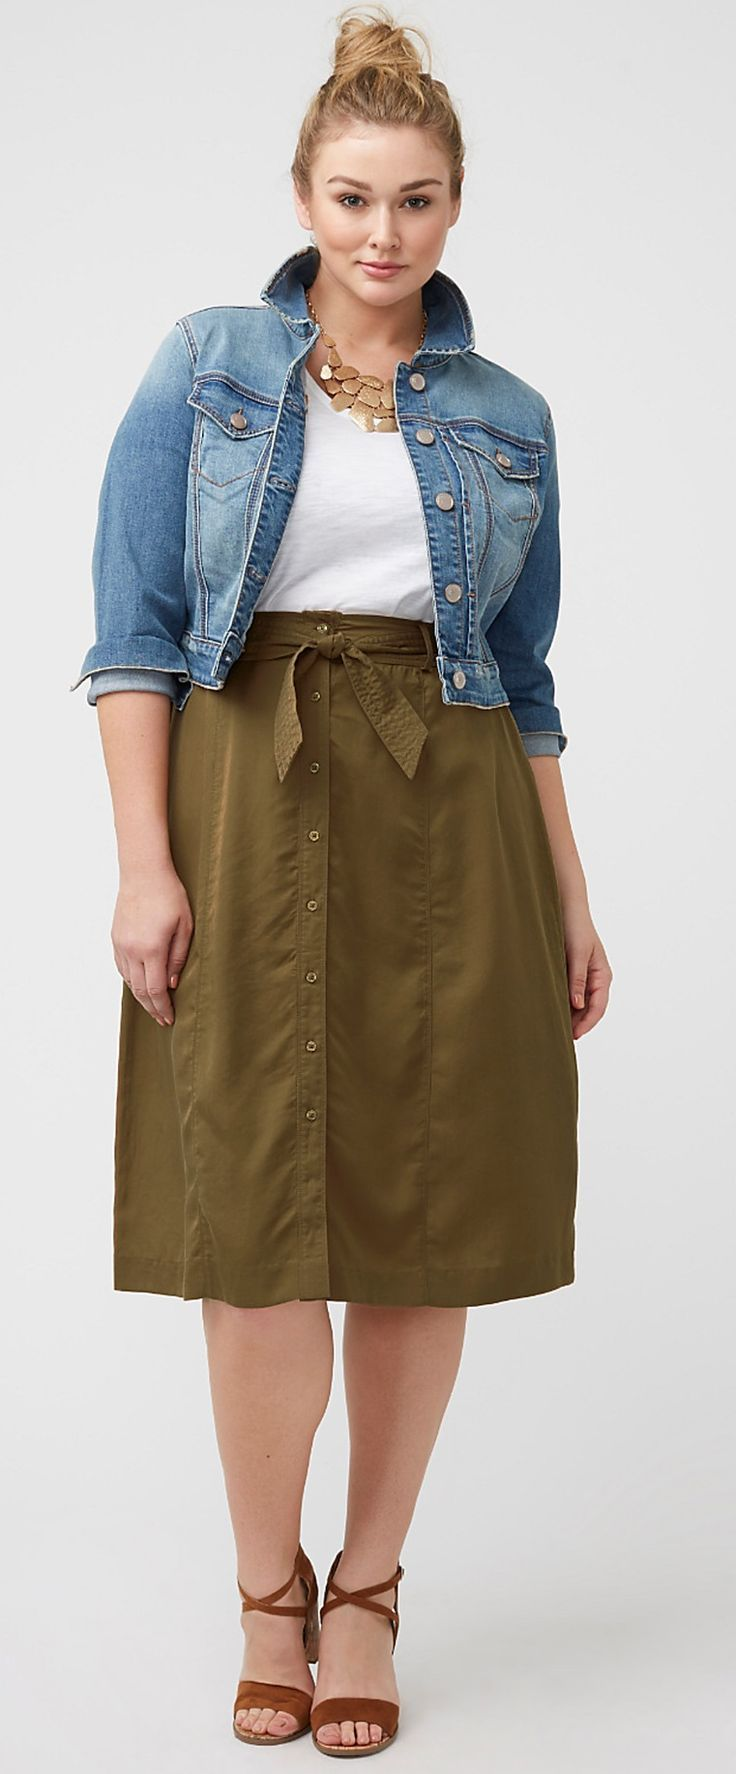 Best 25 Plus size casual ideas on Pinterest  Casual plus size outfits Plus size style and